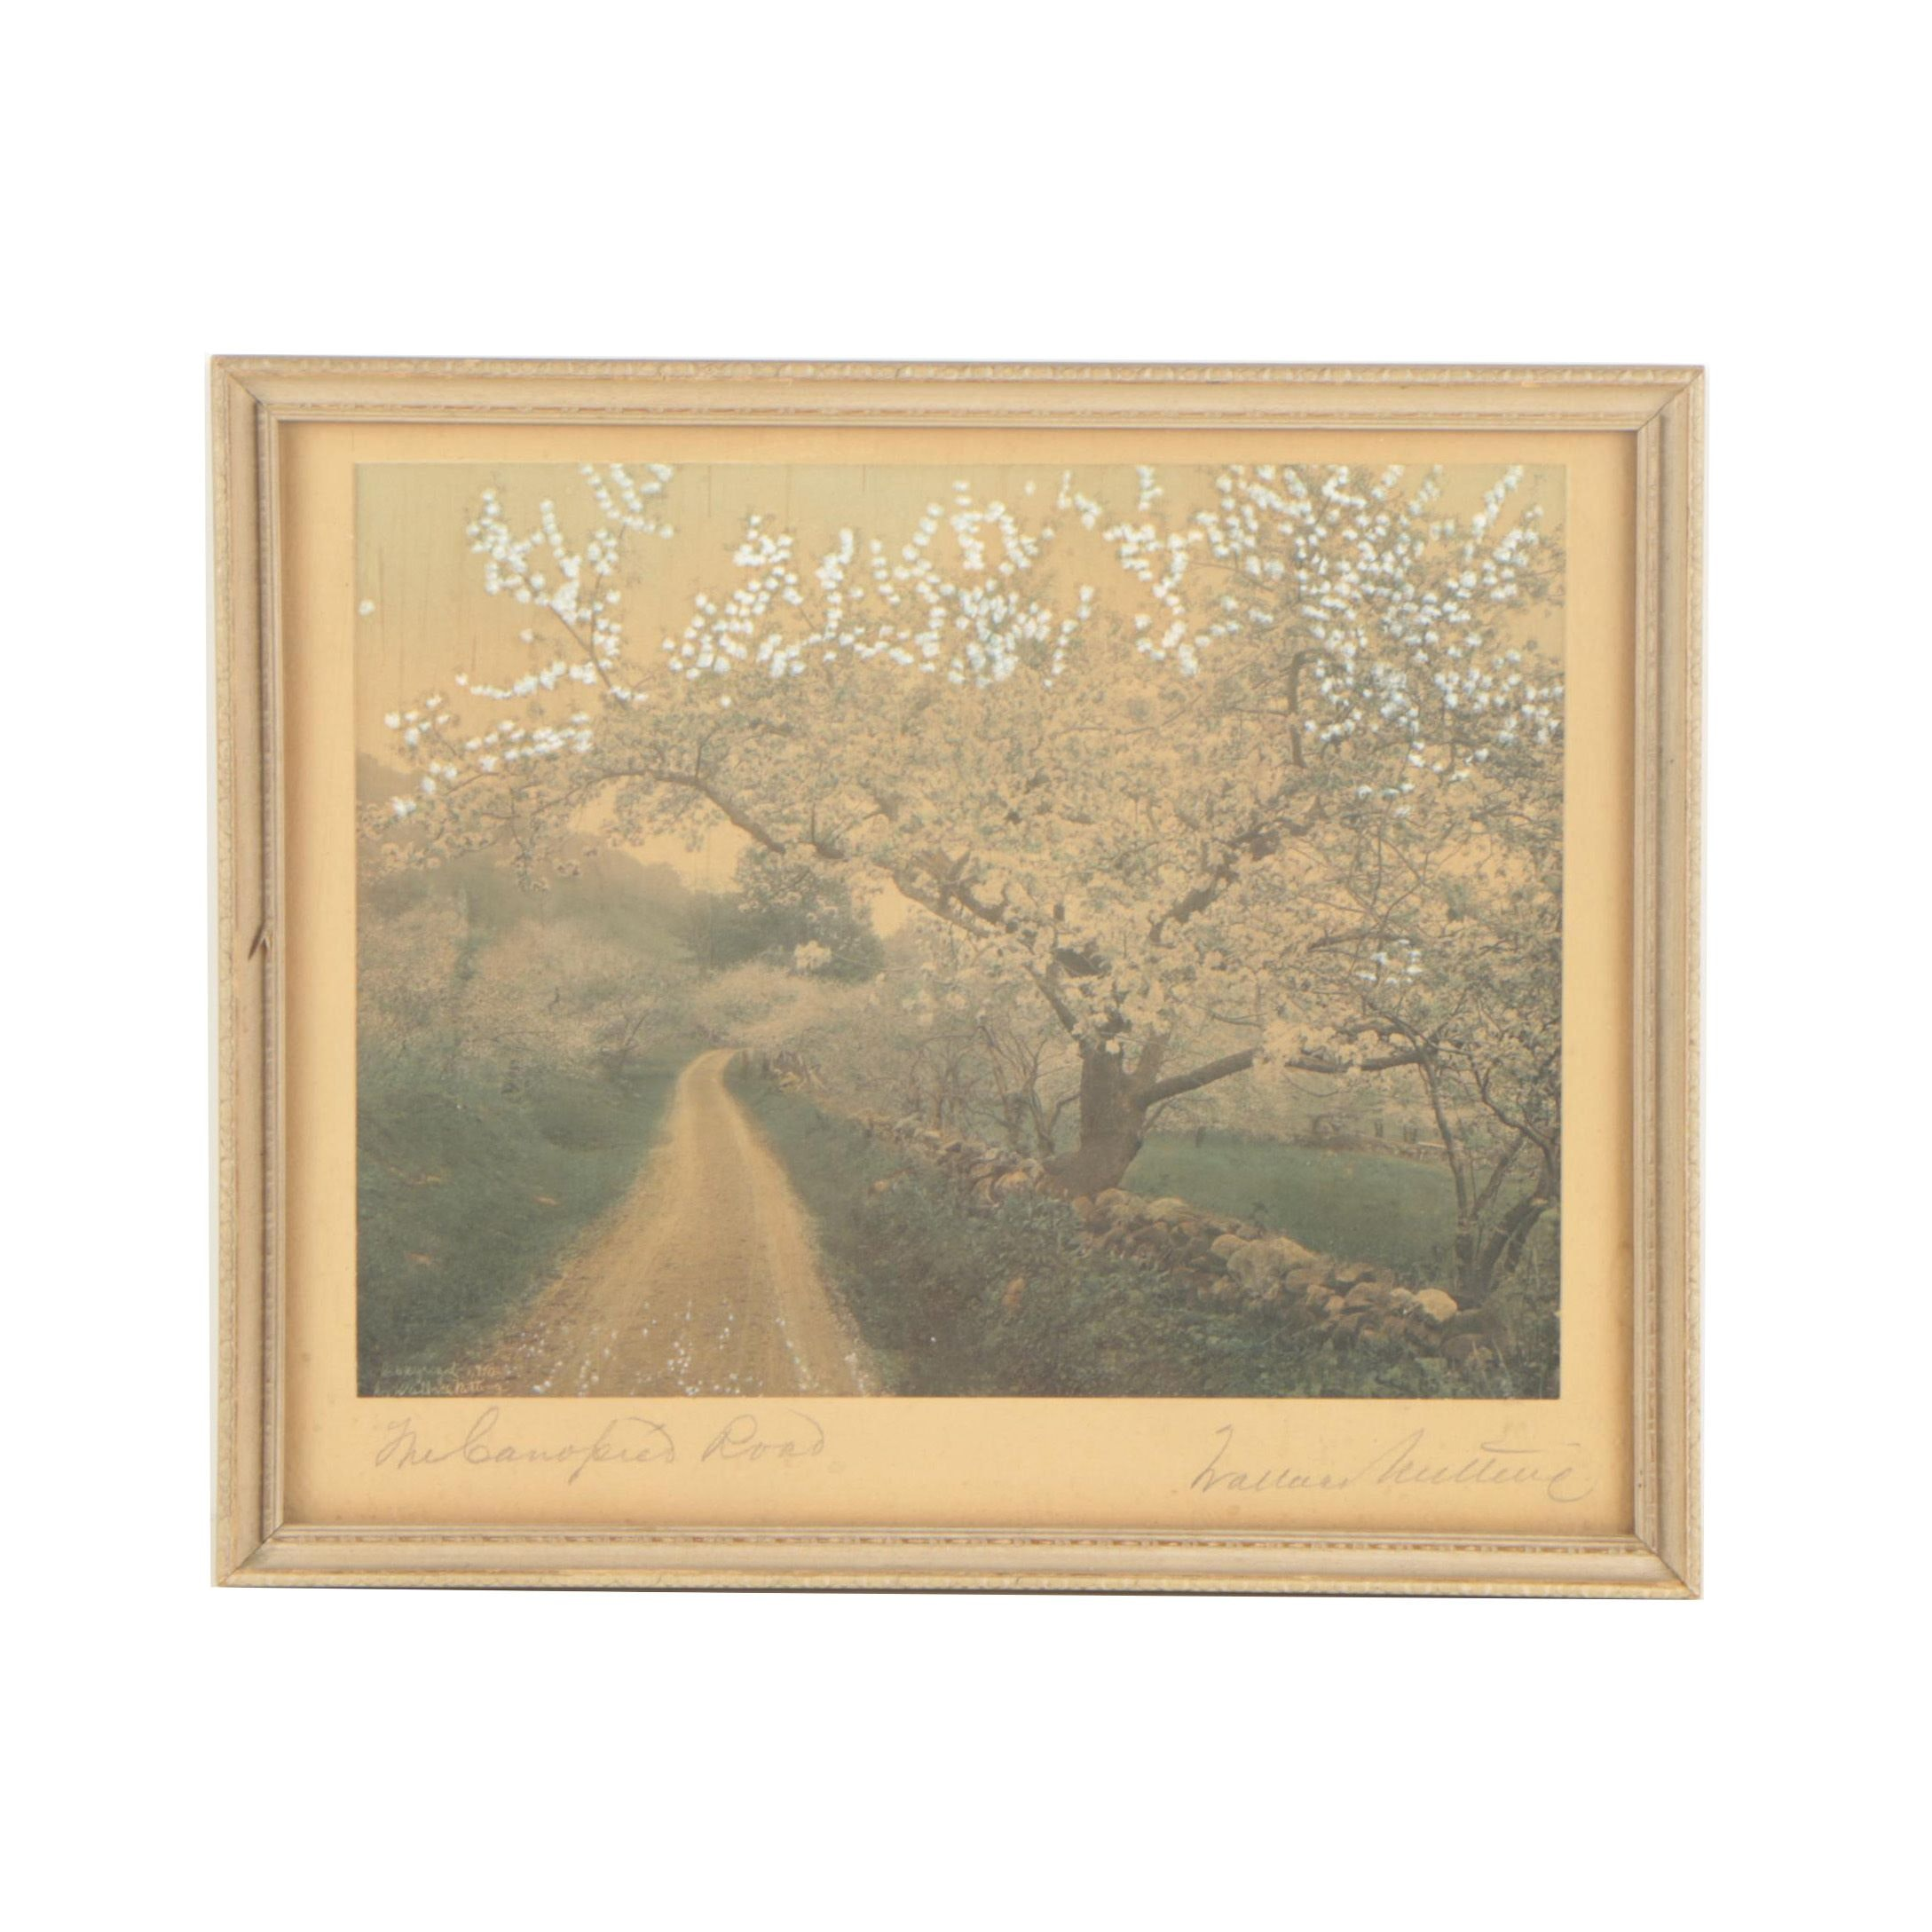 "Wallace Nutting 1910 Hand Colored Photograph ""A Canopied Road"""